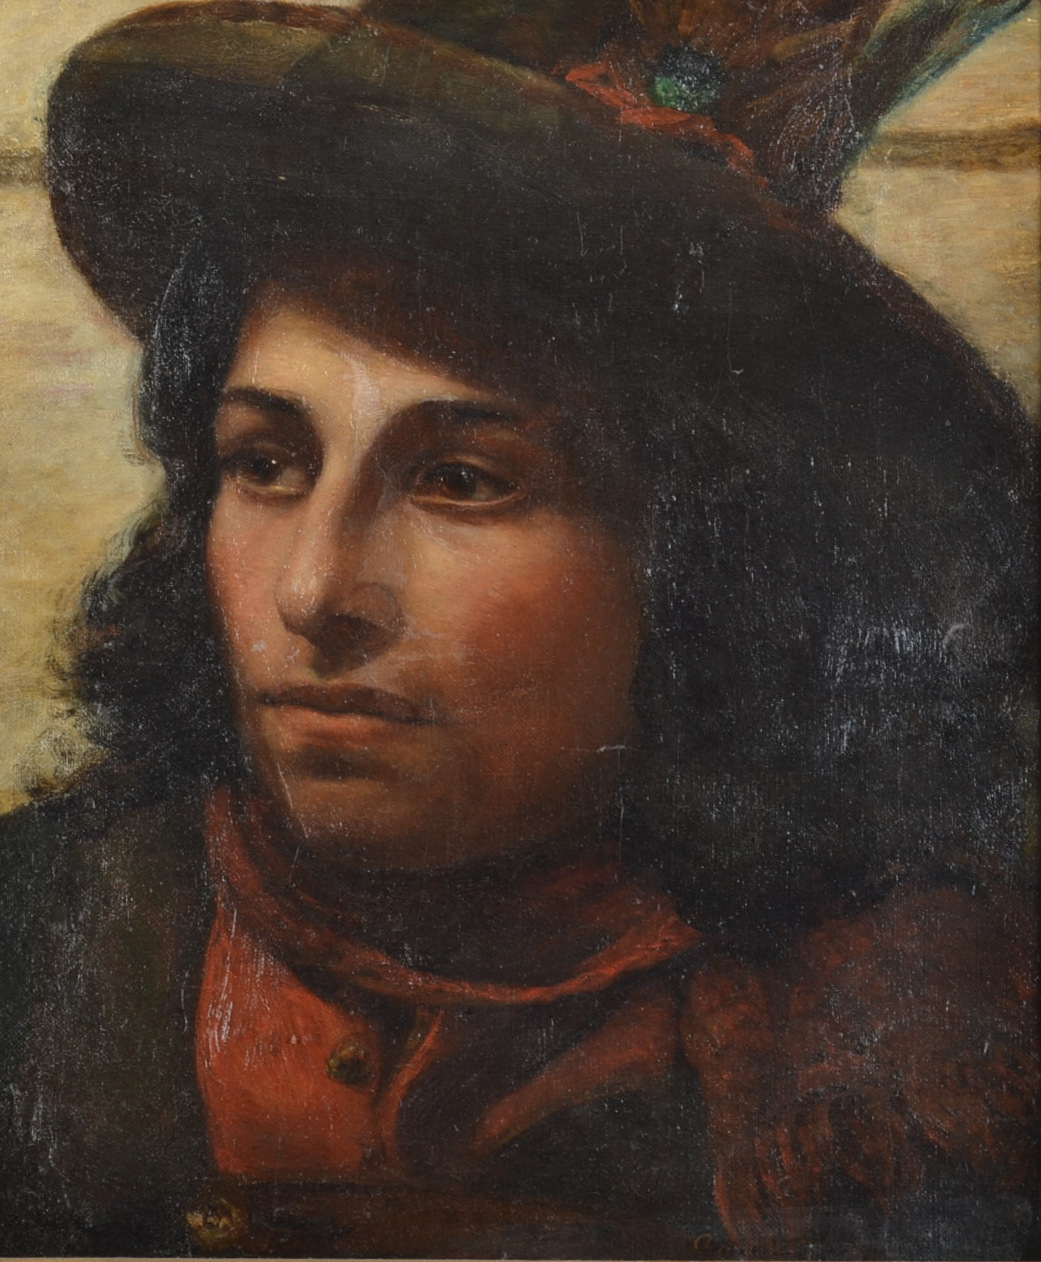 ANNIE LOUISA SWYNNERTON Portrait of a Young Italian Man Oil on canvas Signed 36 x 30.5cm - Image 2 of 2